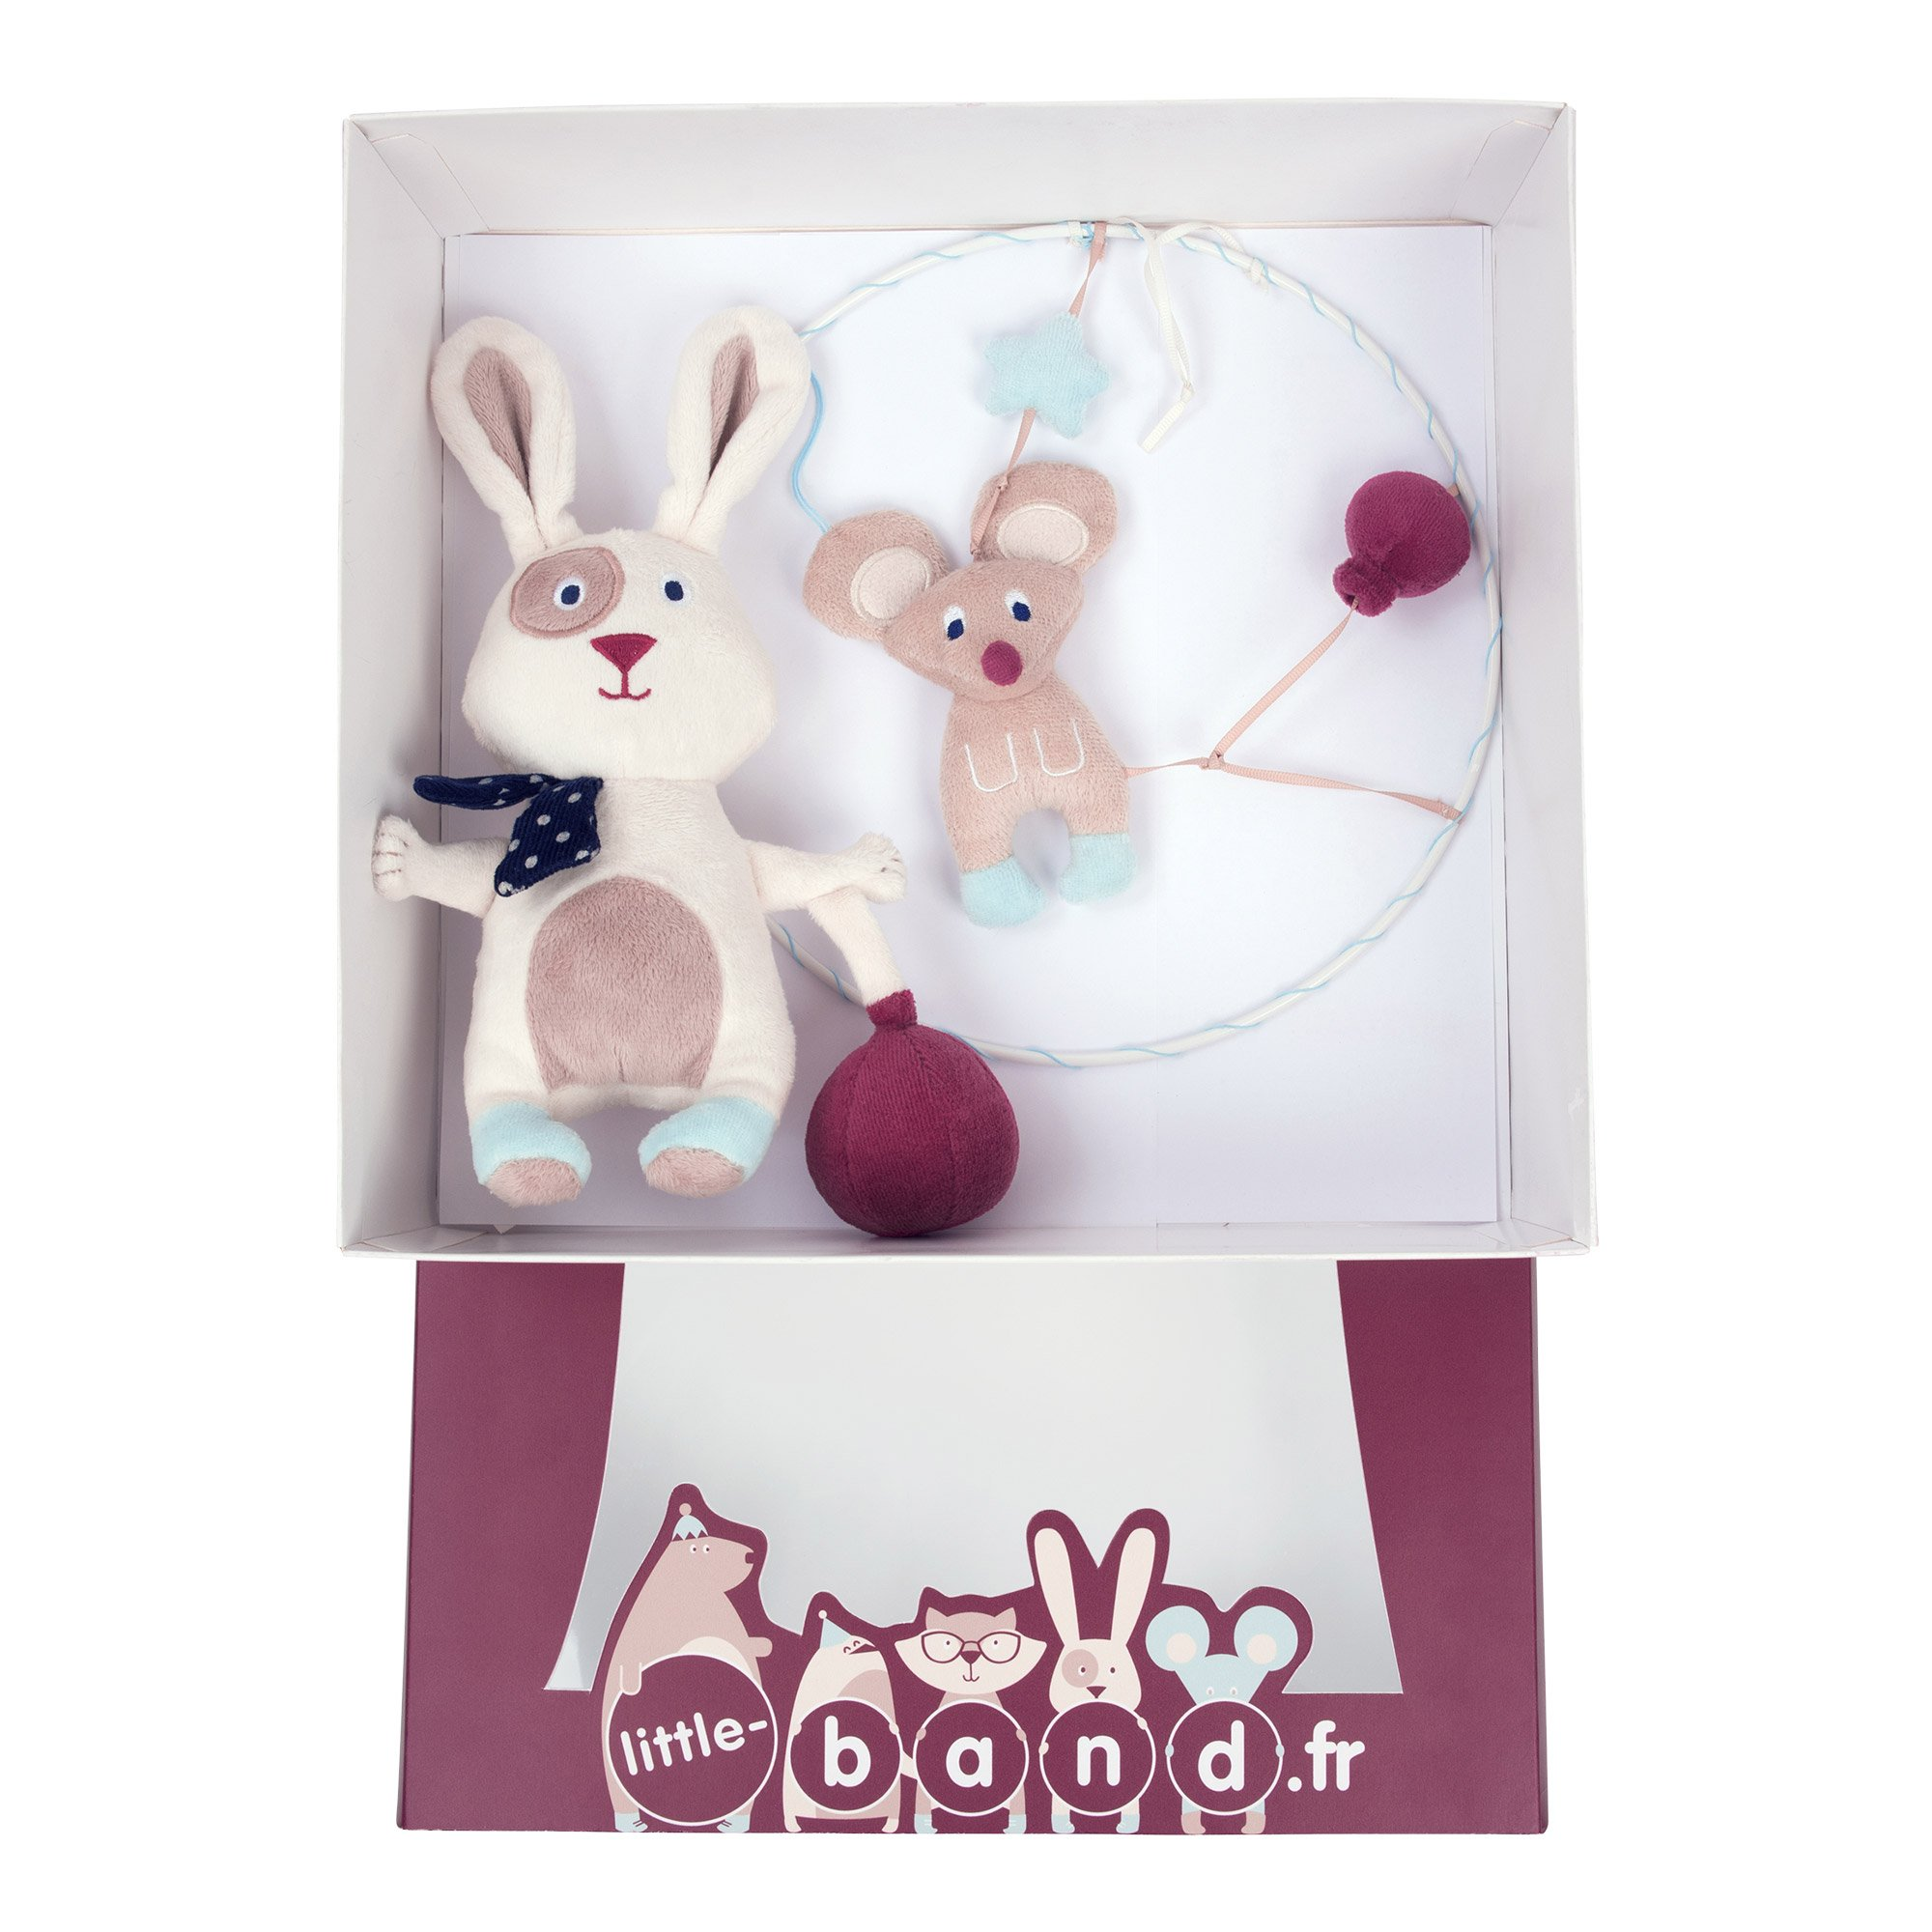 Balloon Company coffret peluche + attrape-rêve Beige  de Little Band